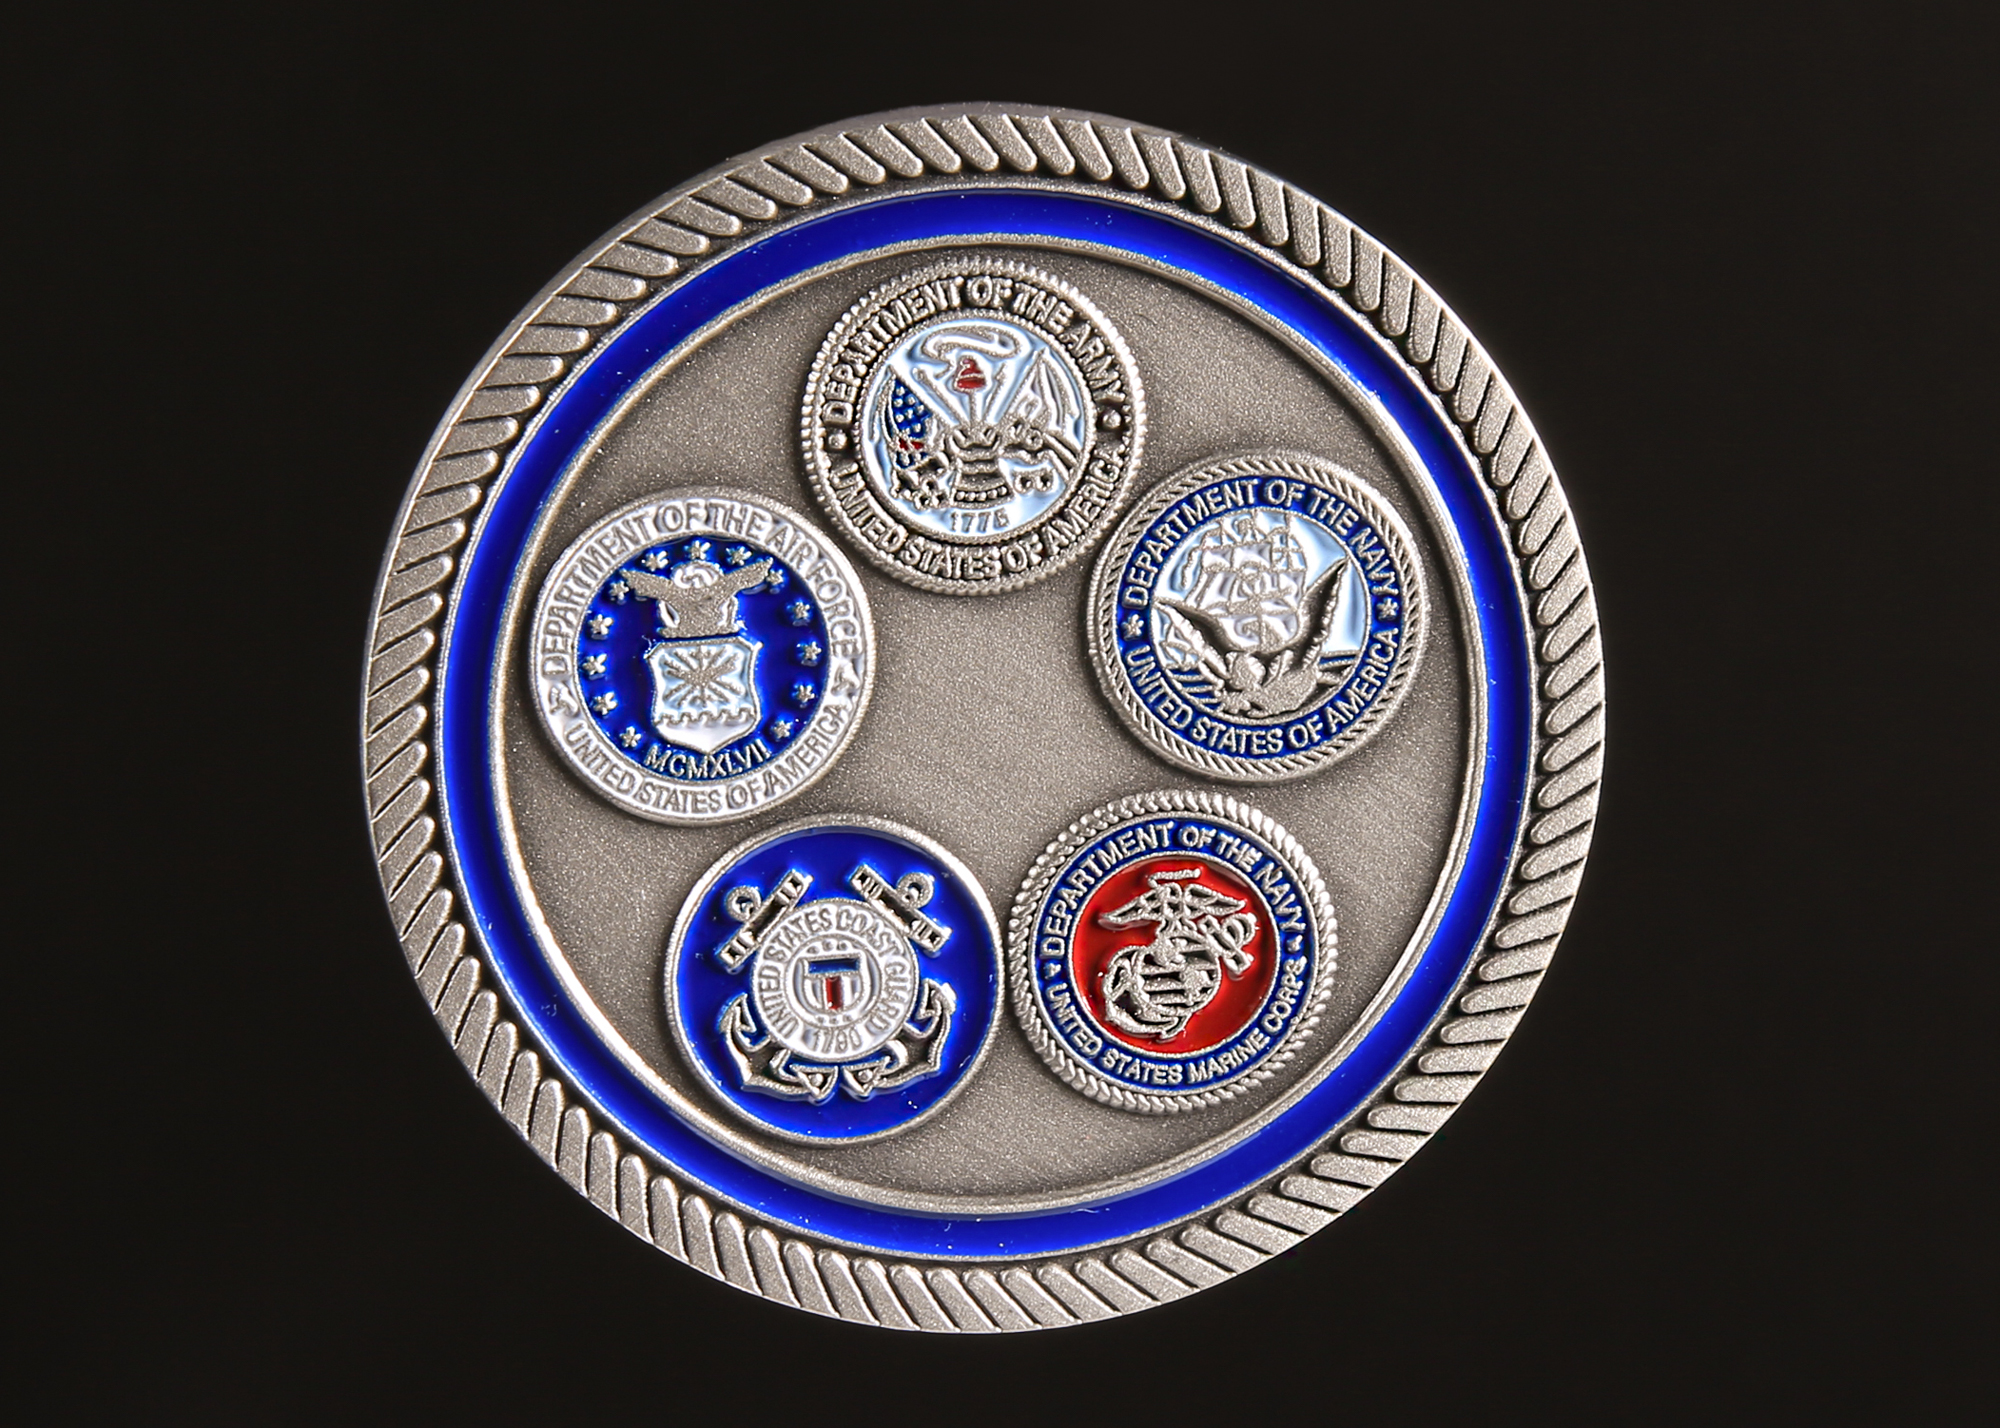 BTYR Challenge Coins for Employees | DCTC News